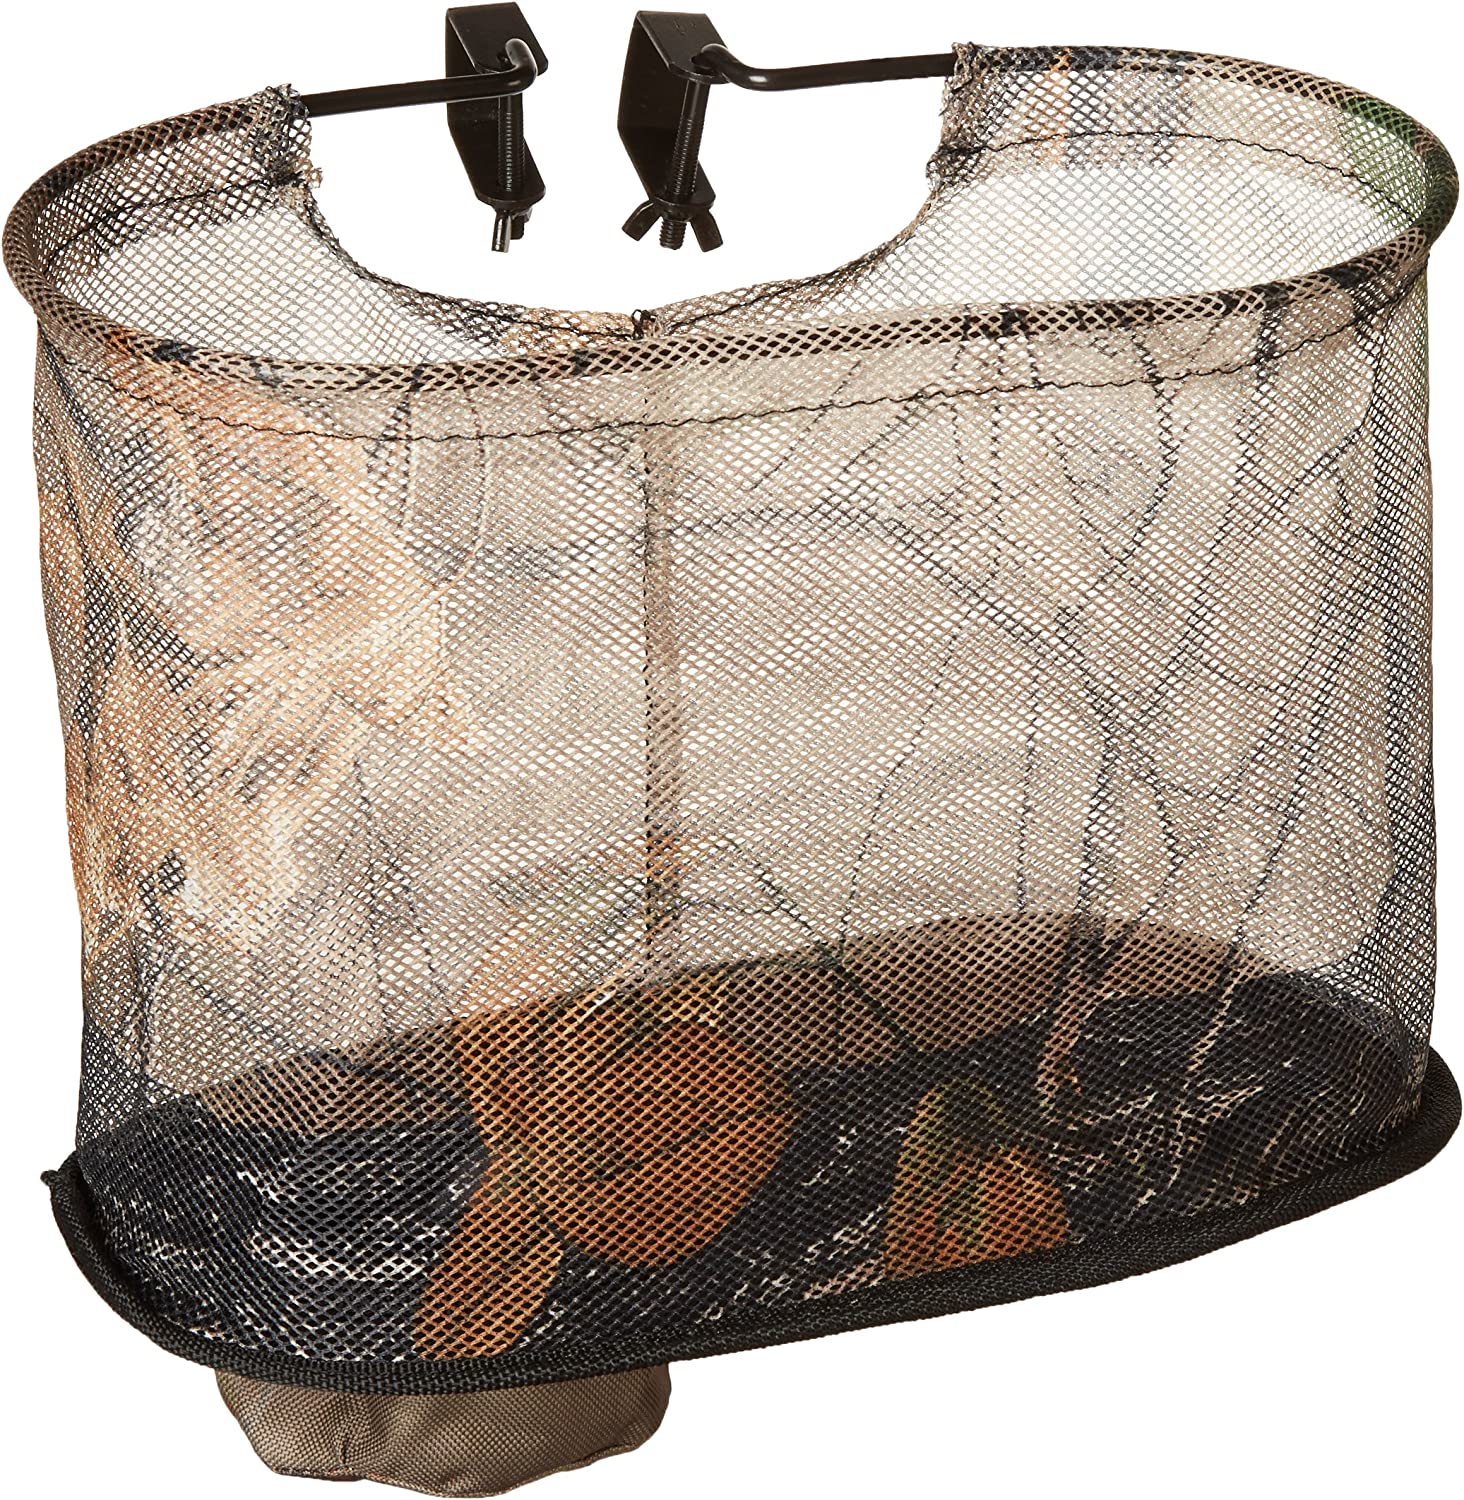 Big Game Treestands EZ Access Treestand Basket, Black